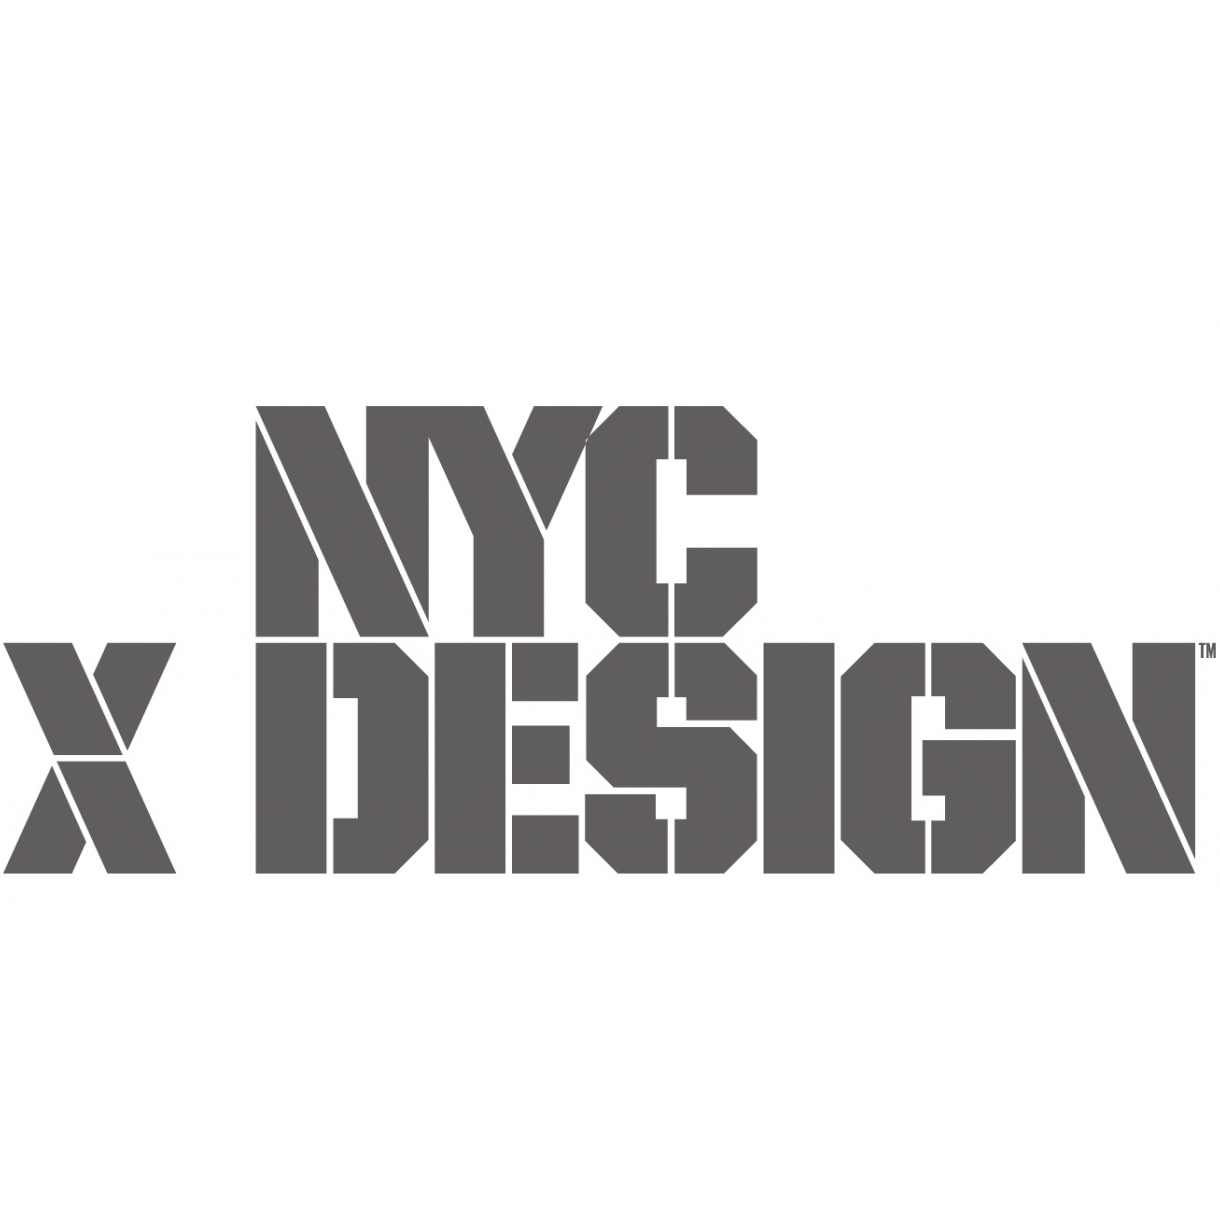 NYCXDESIGN_Logos-2018-WHITE-square.jpg